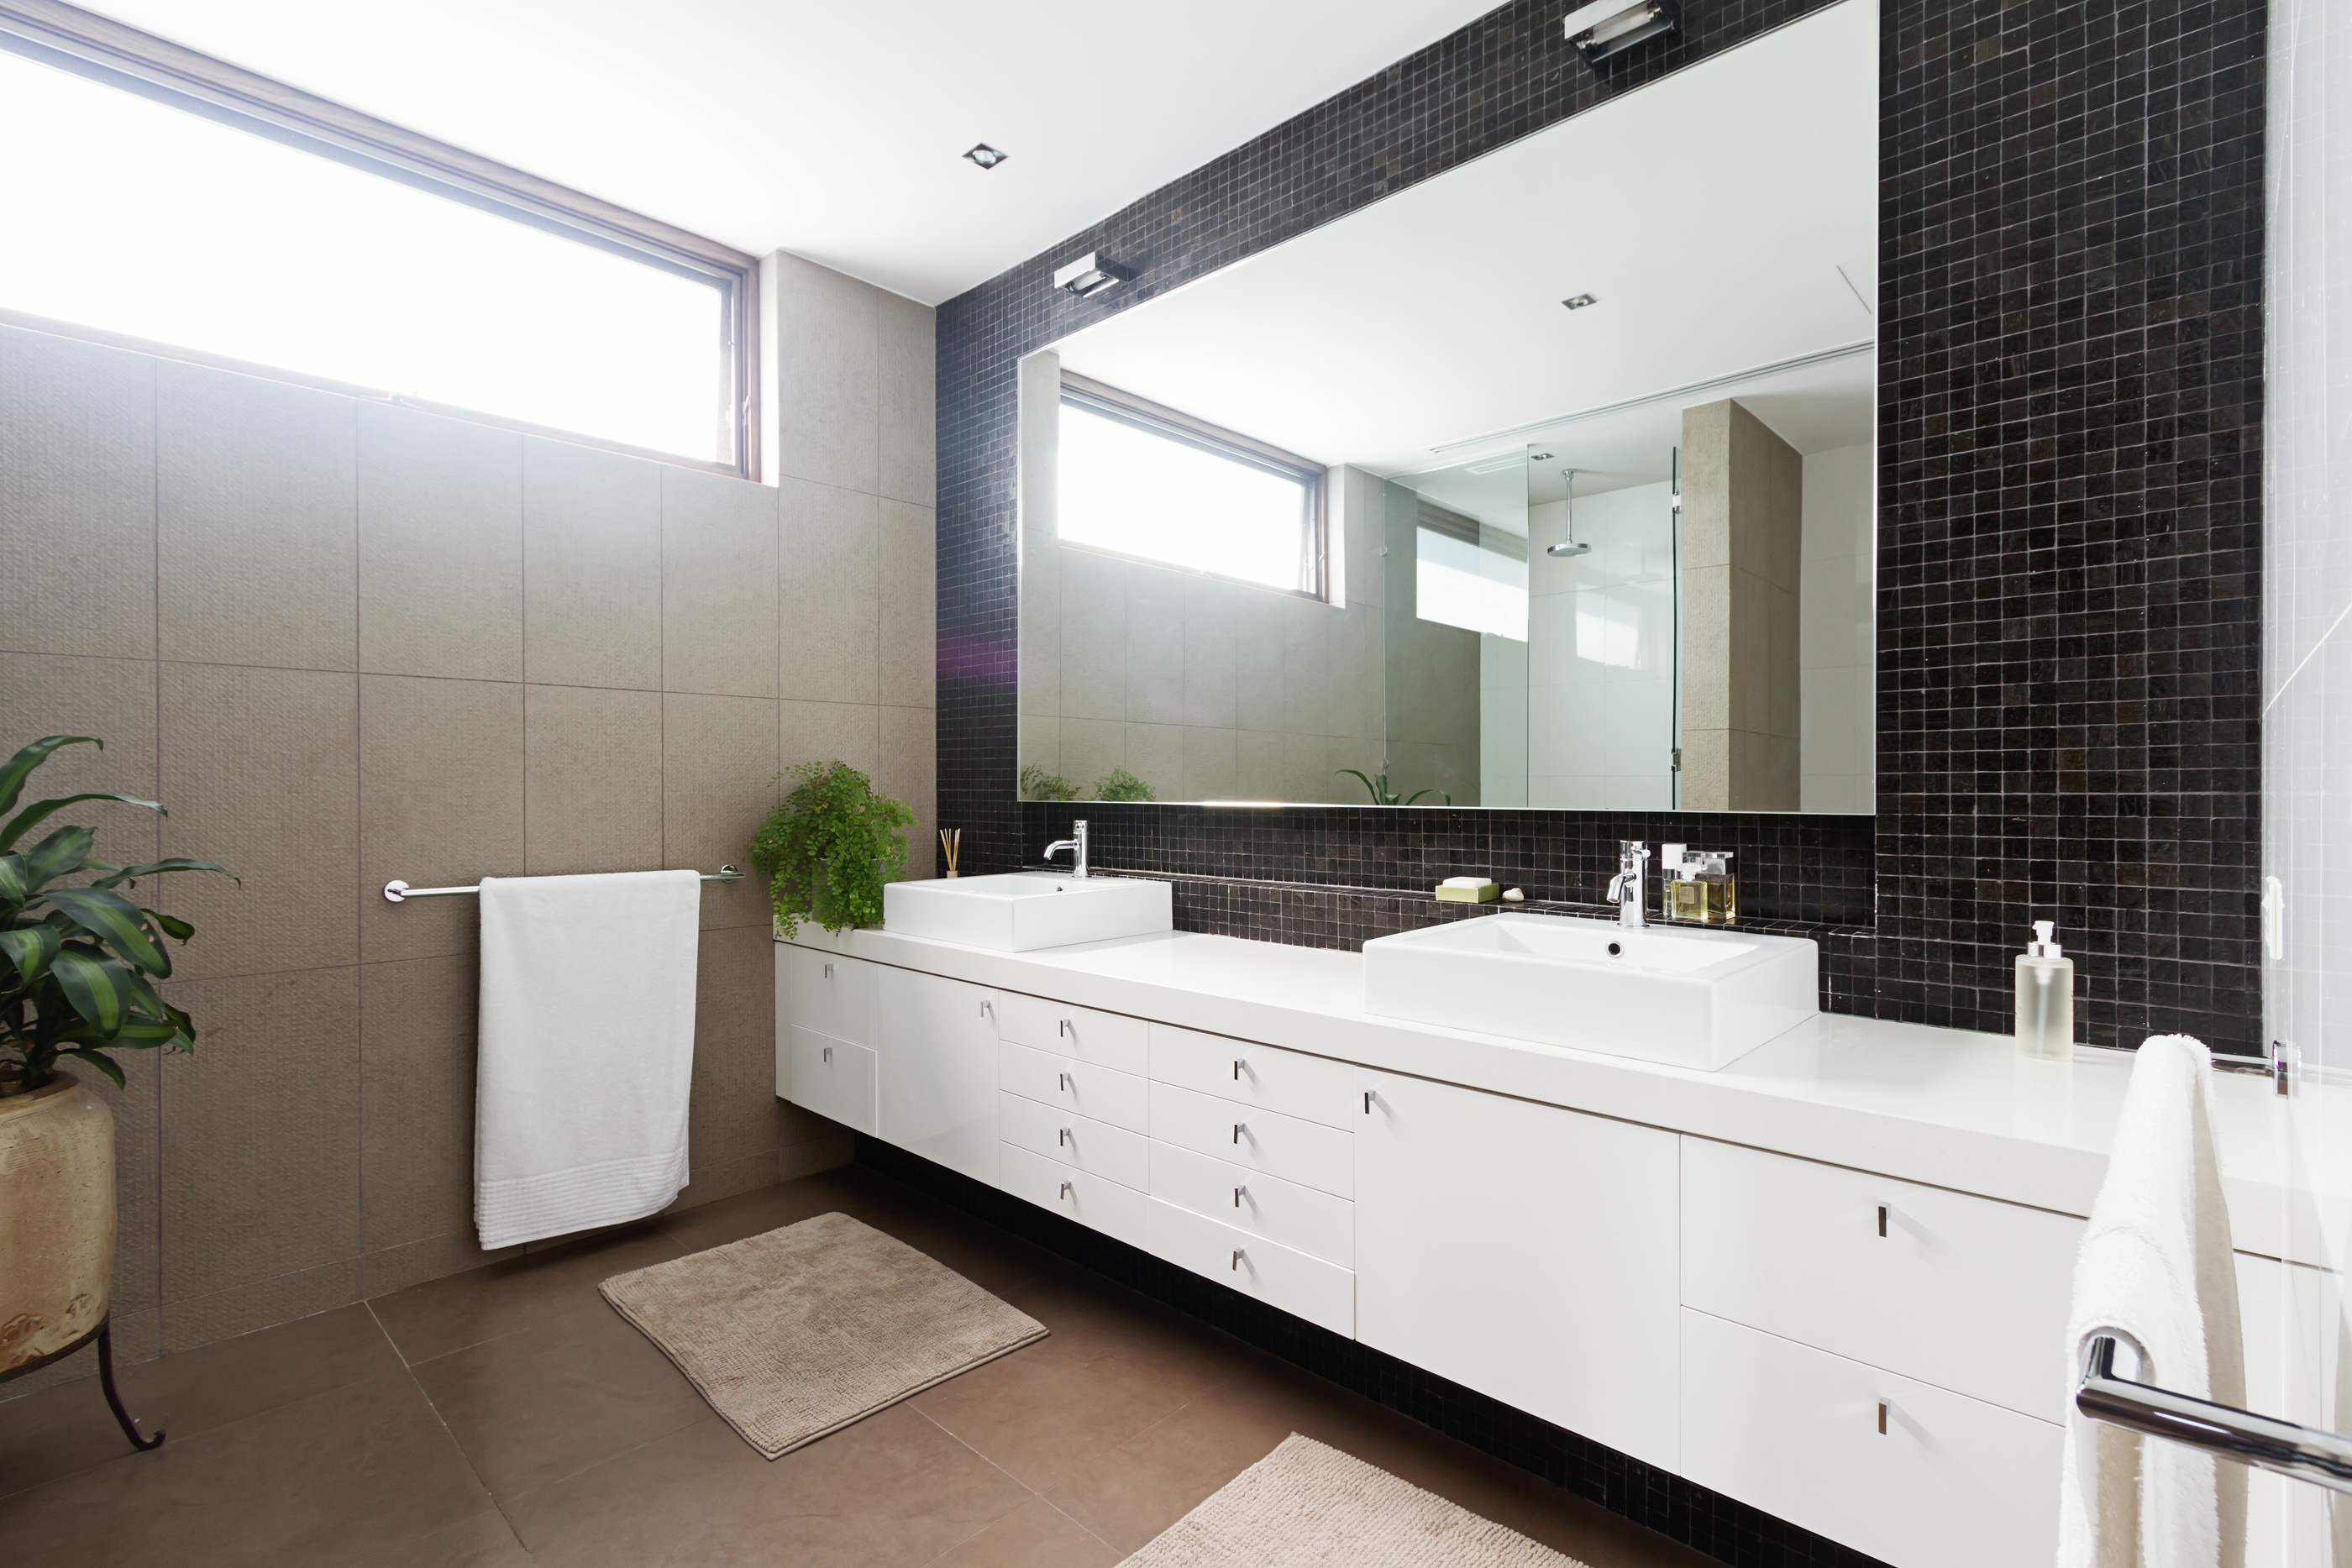 Black Mosaic Tiled Splashback And Double Basin Bathroom